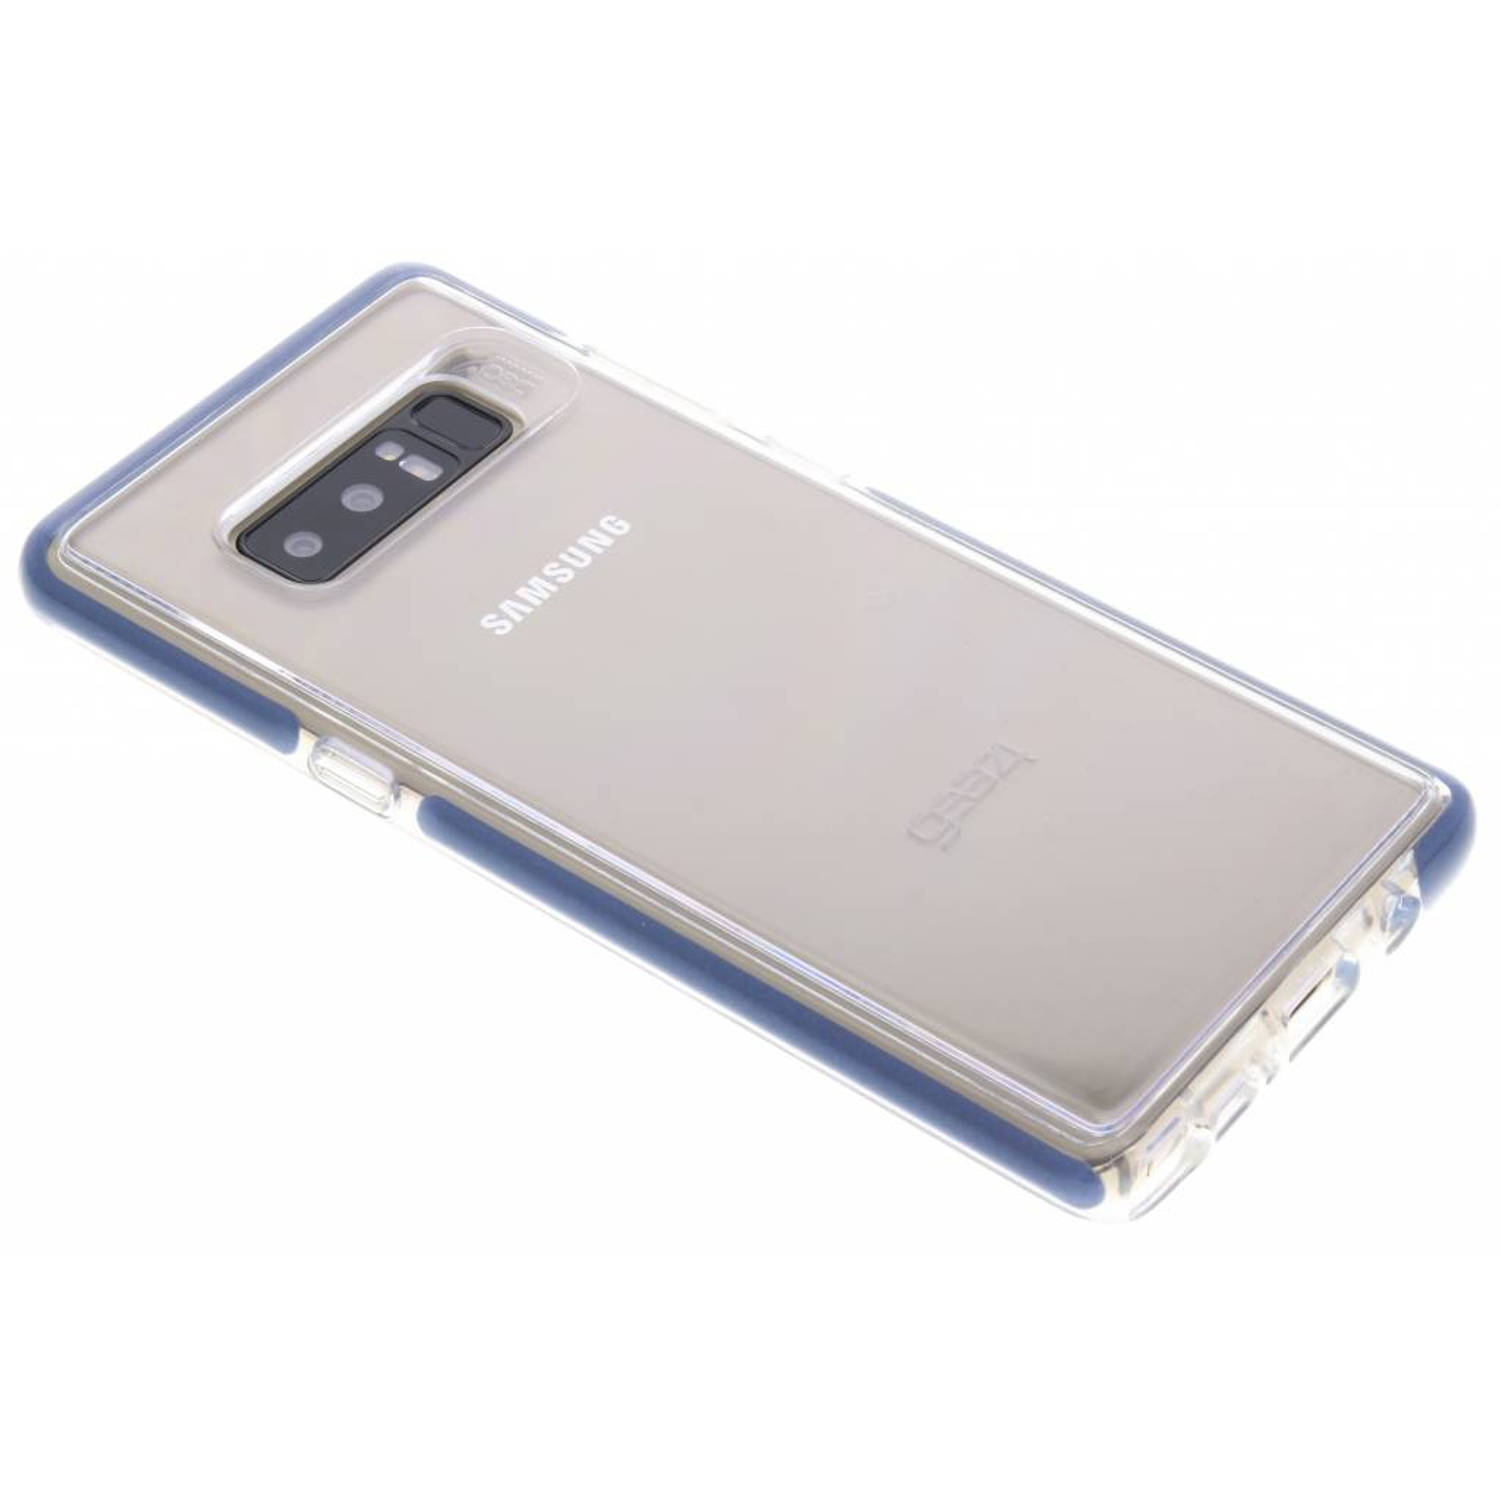 Blauwe D3O Piccadilly Case voor de Samsung Galaxy Note 8